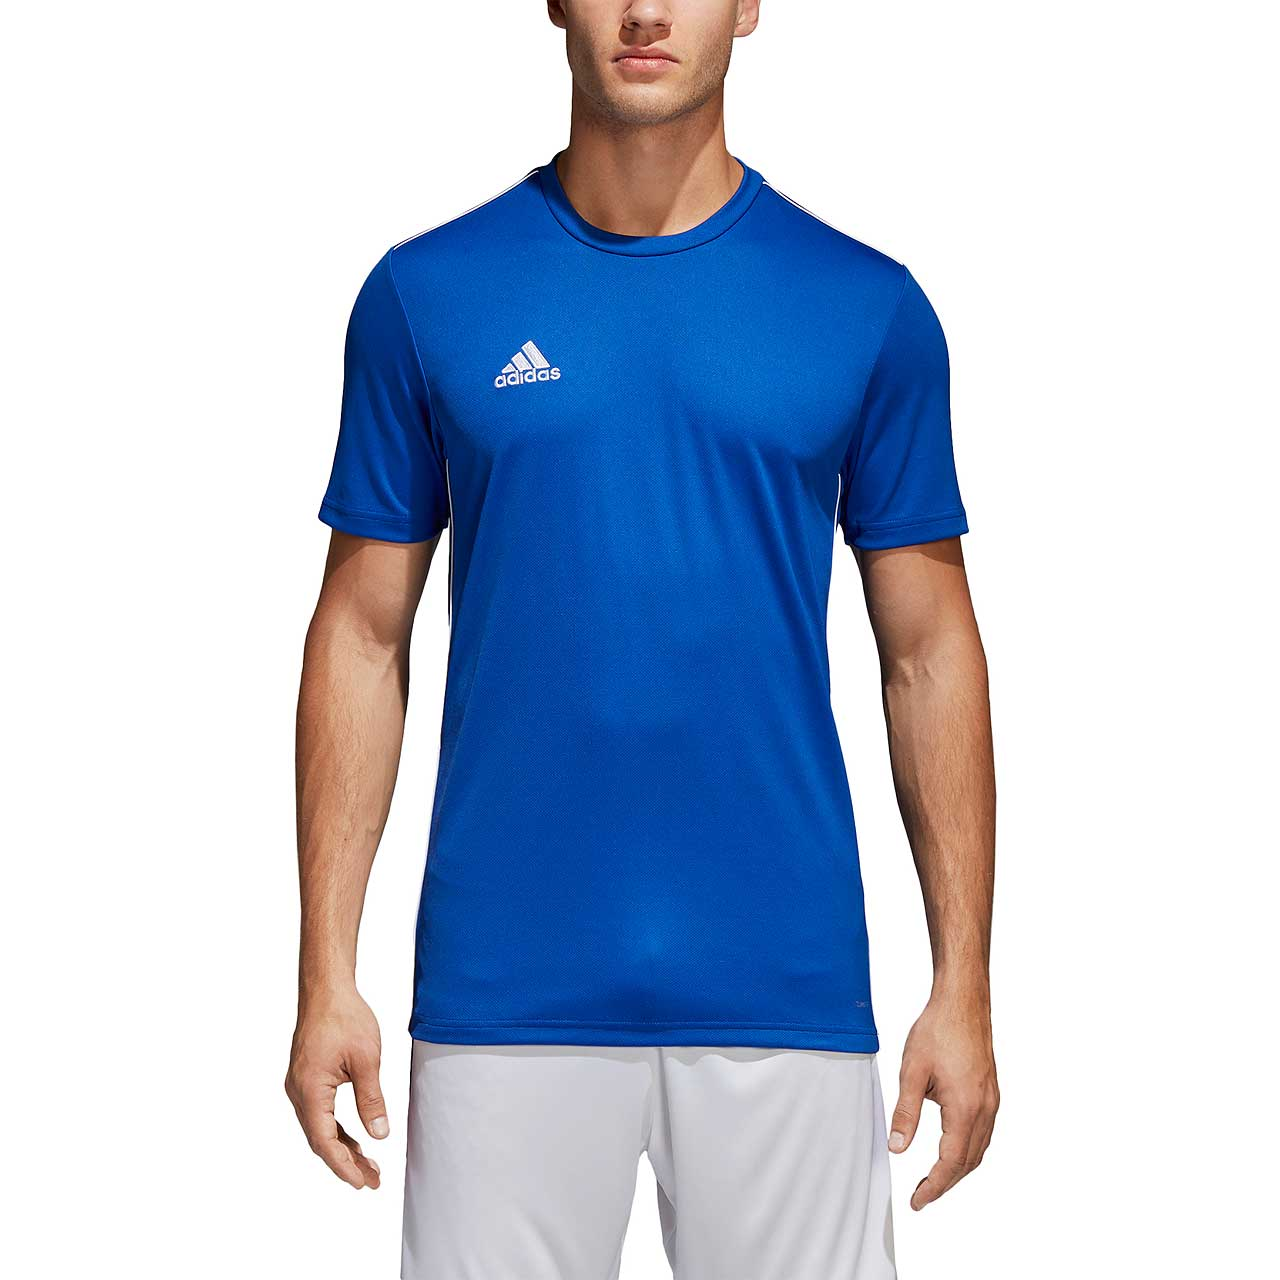 adidas Core 18 Training Jersey Youth Trainings T Shirt Kinder